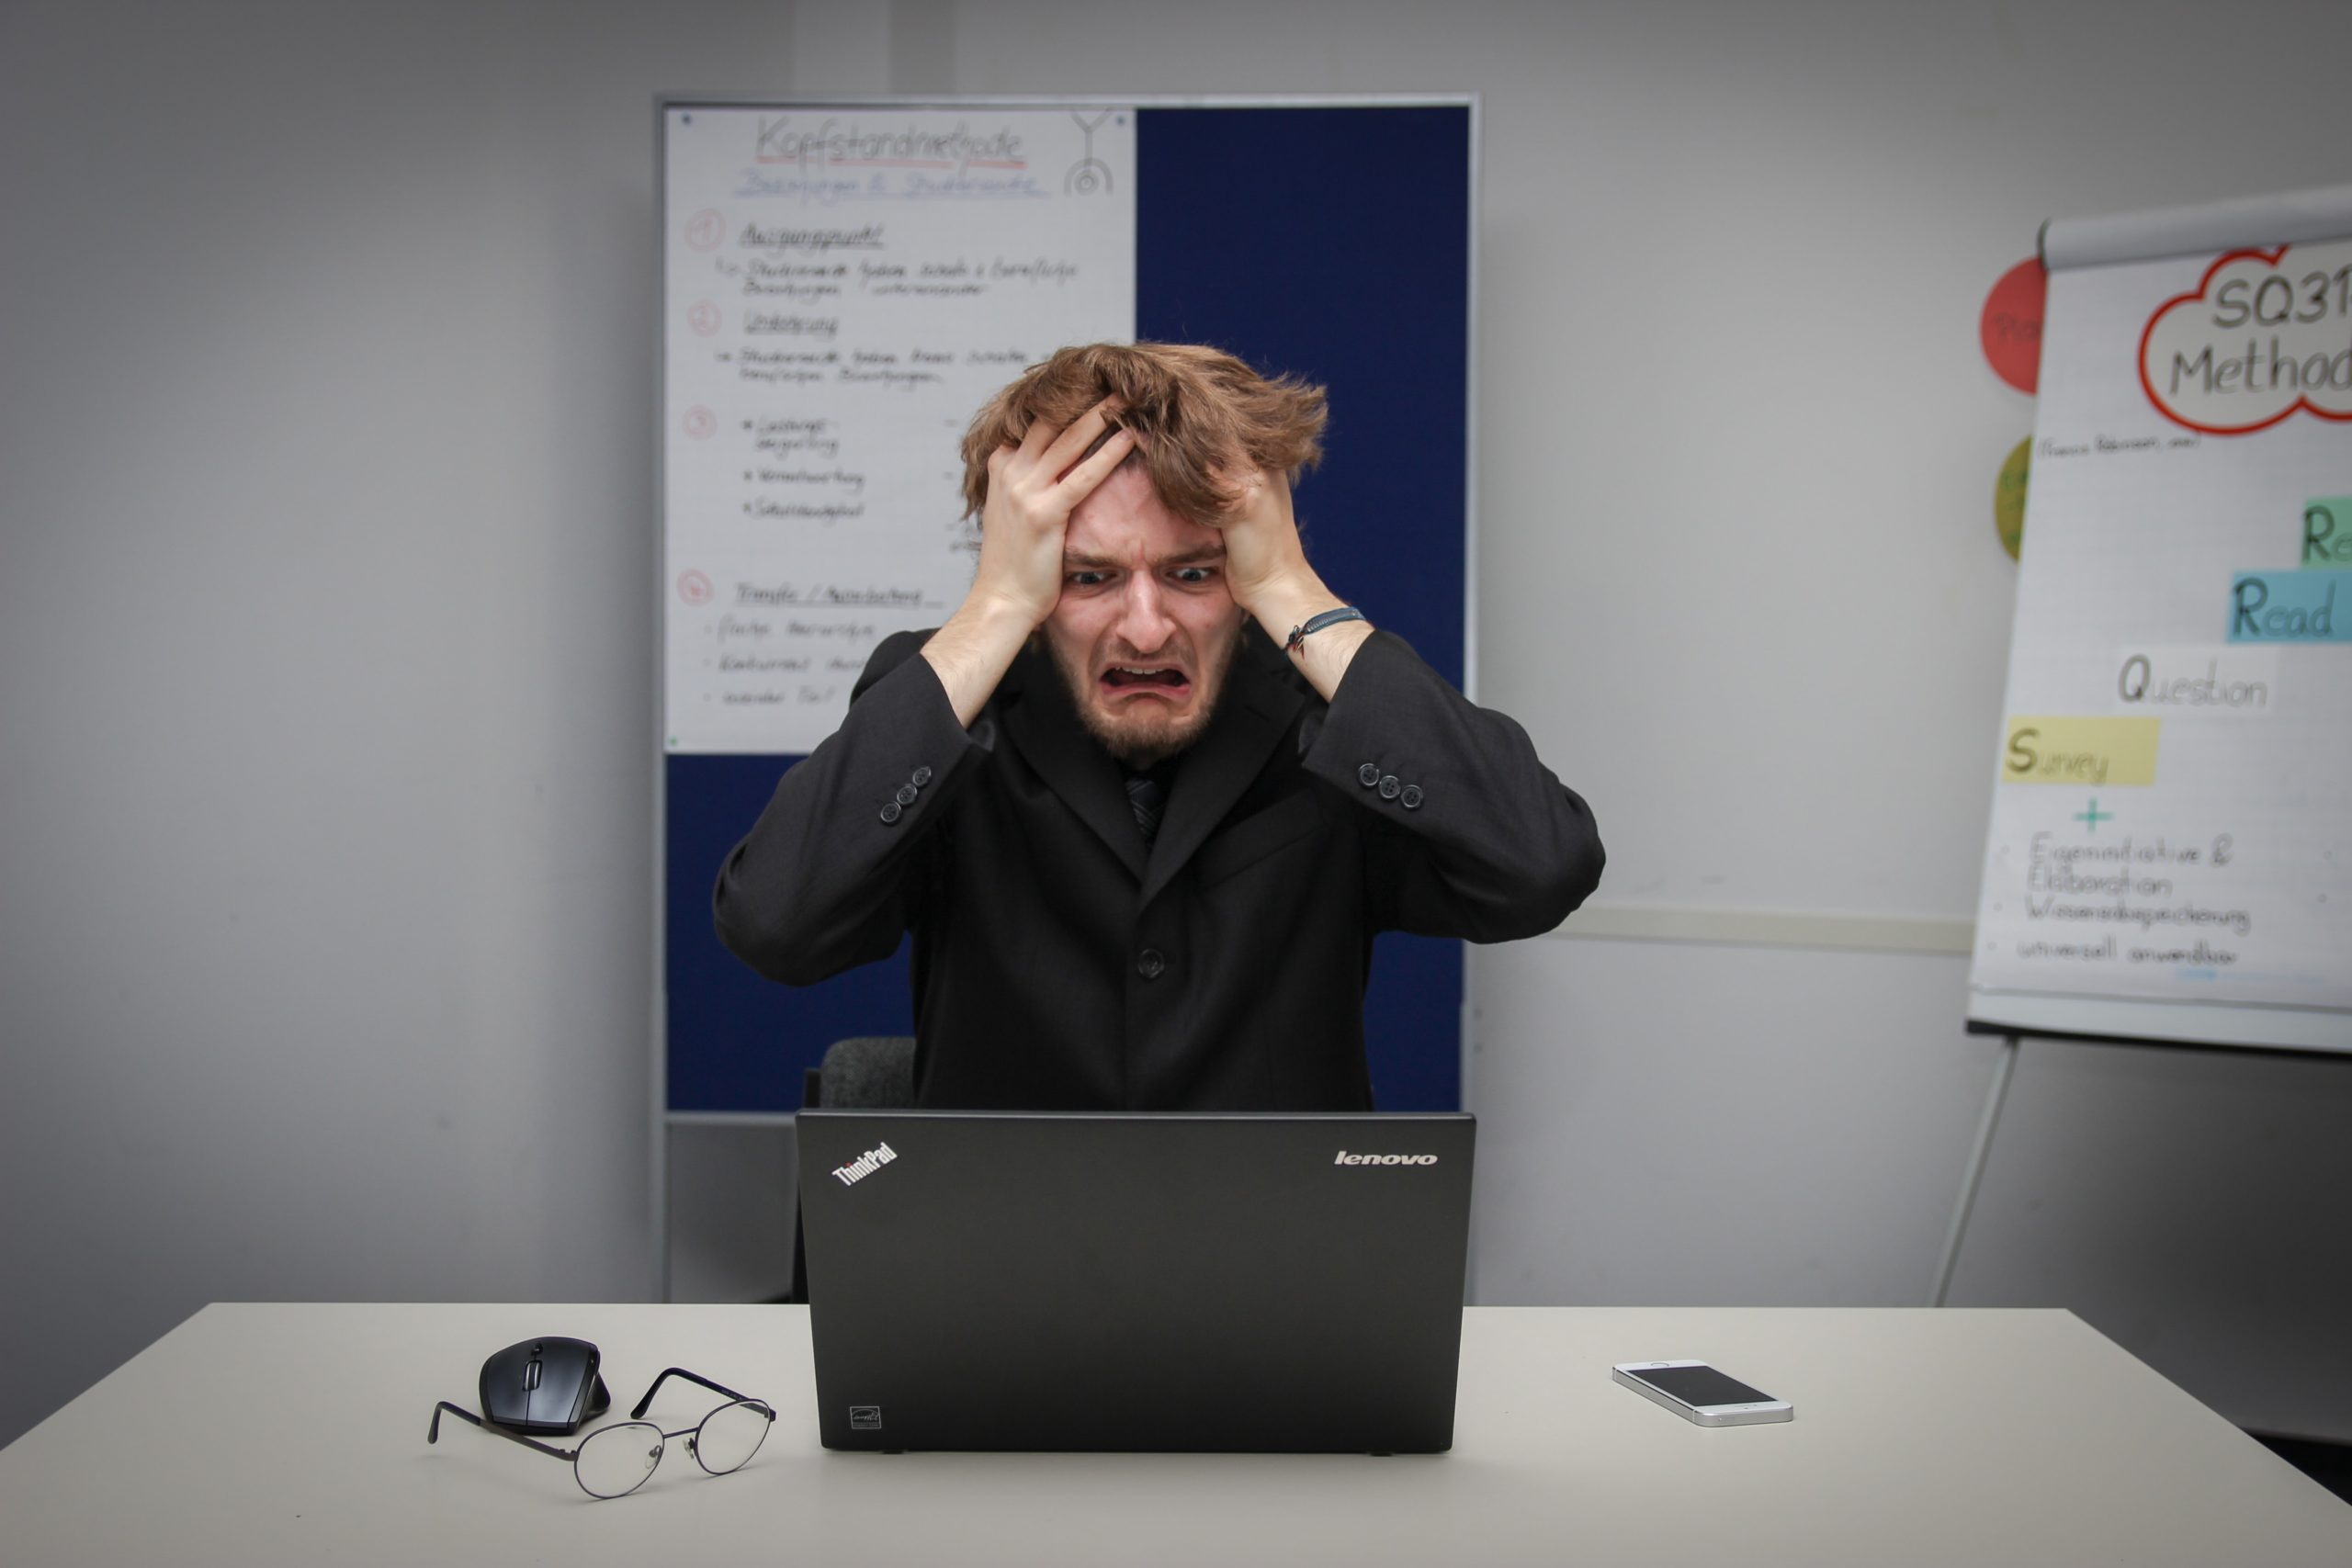 person at computer looking stressed and frustrated